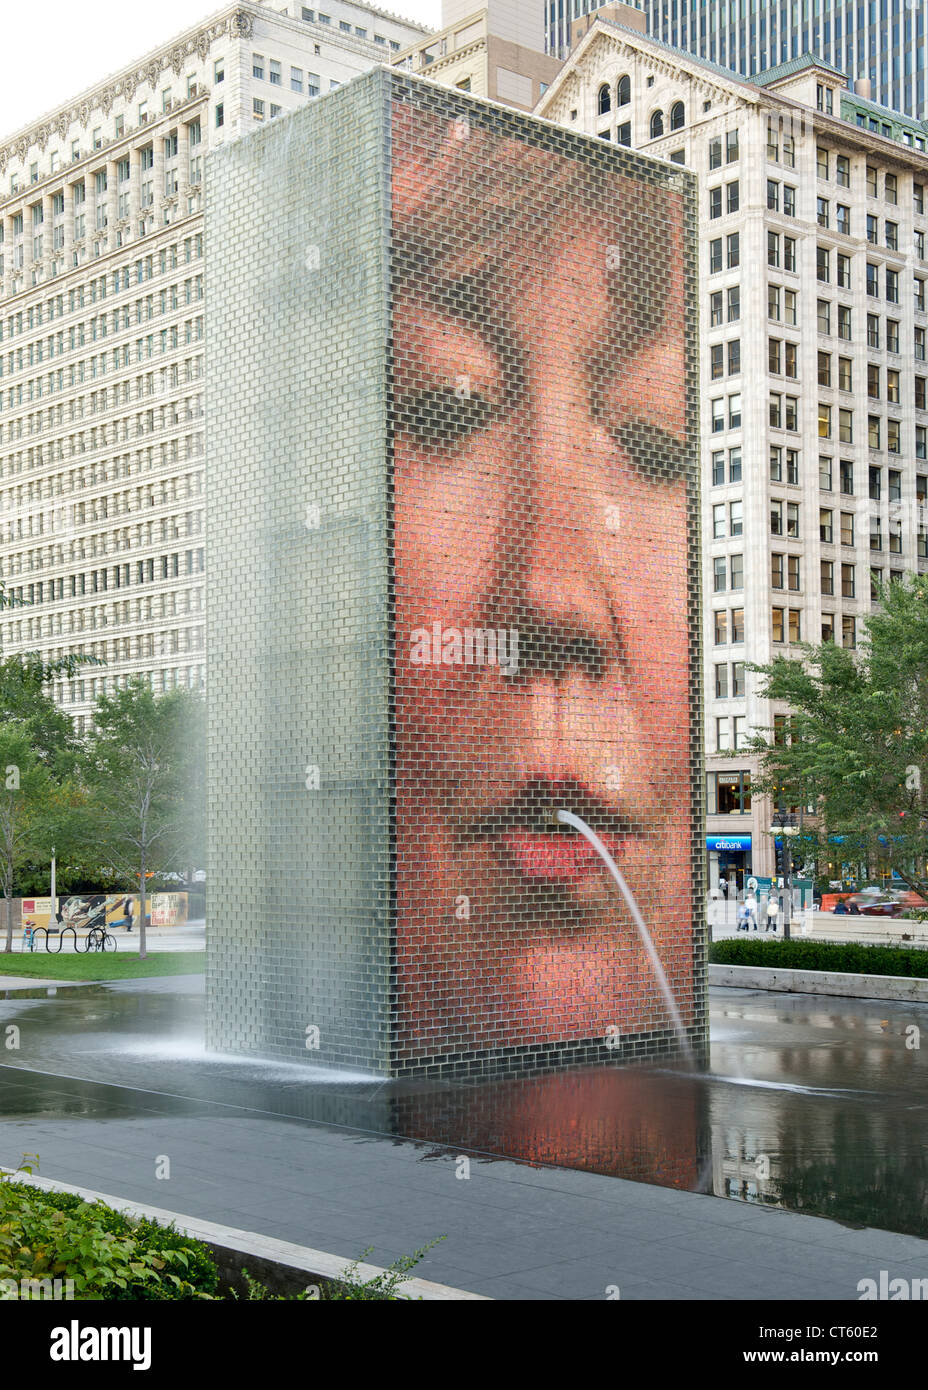 Crown fountain in Millennium Park in Chicago, Illinois, USA. - Stock Image